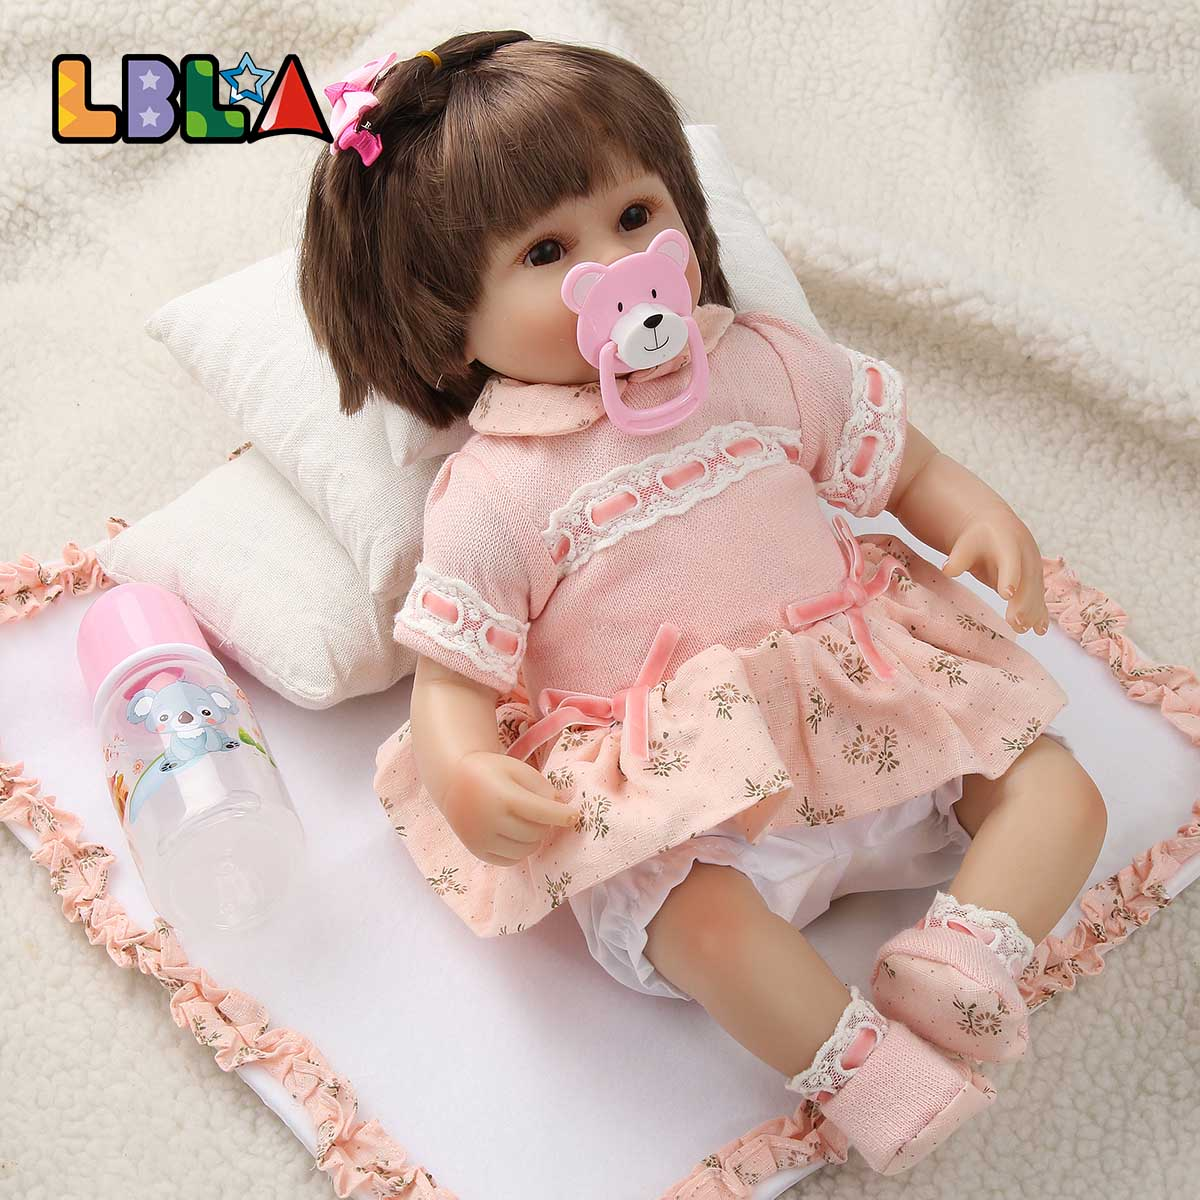 Reborn Doll Toys Realistic Soft Silicone Newborn Doll Girl Toy 18 Inch Adorable Bebes Kids Brinquedos Boneca Toy for Christmas